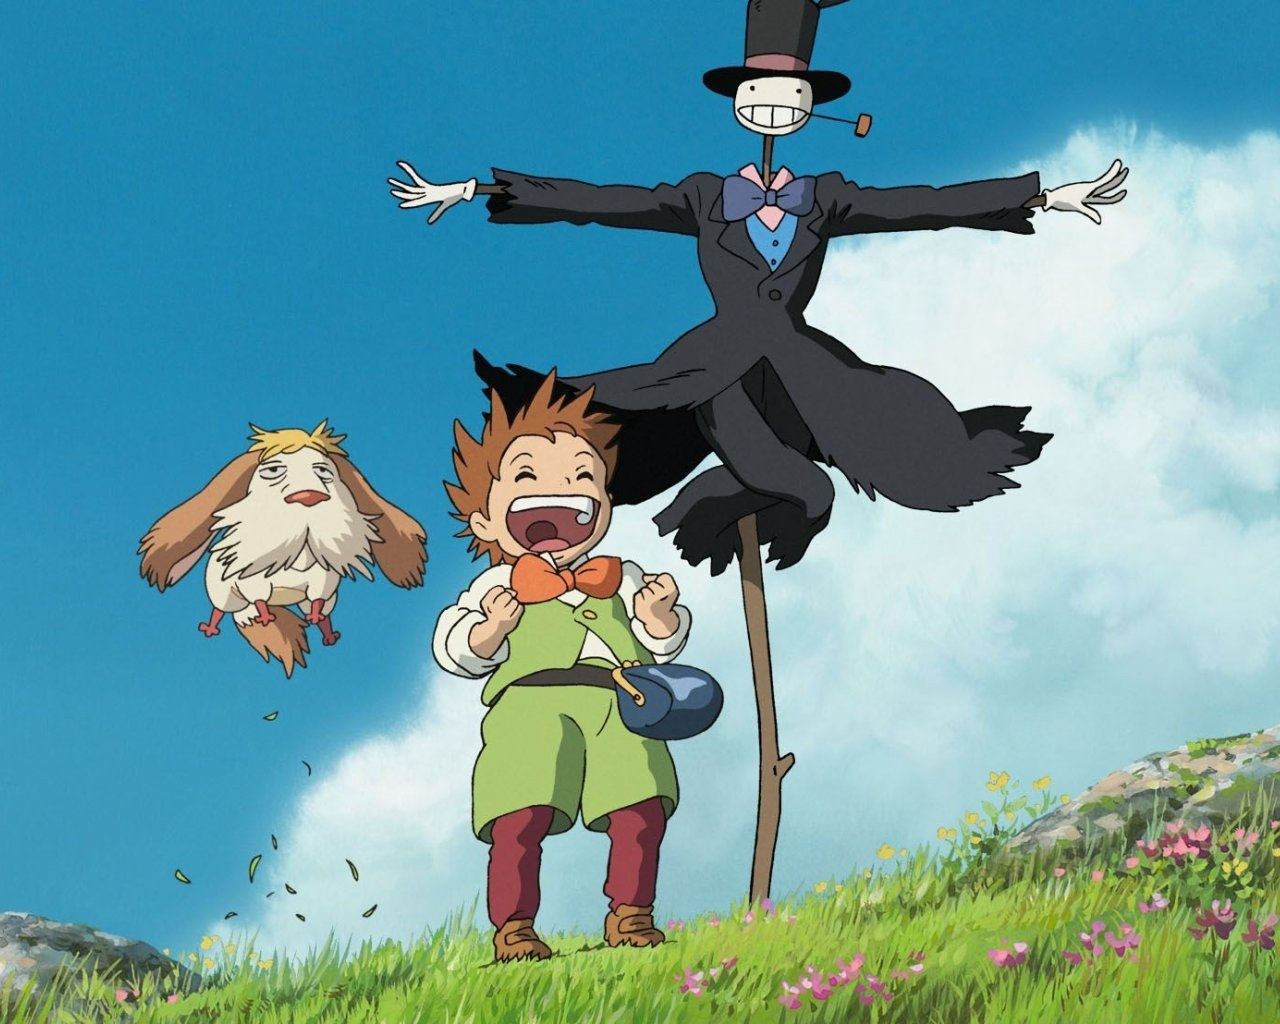 Hin, markl and Turnip in Howl's Moving Castle (2004)